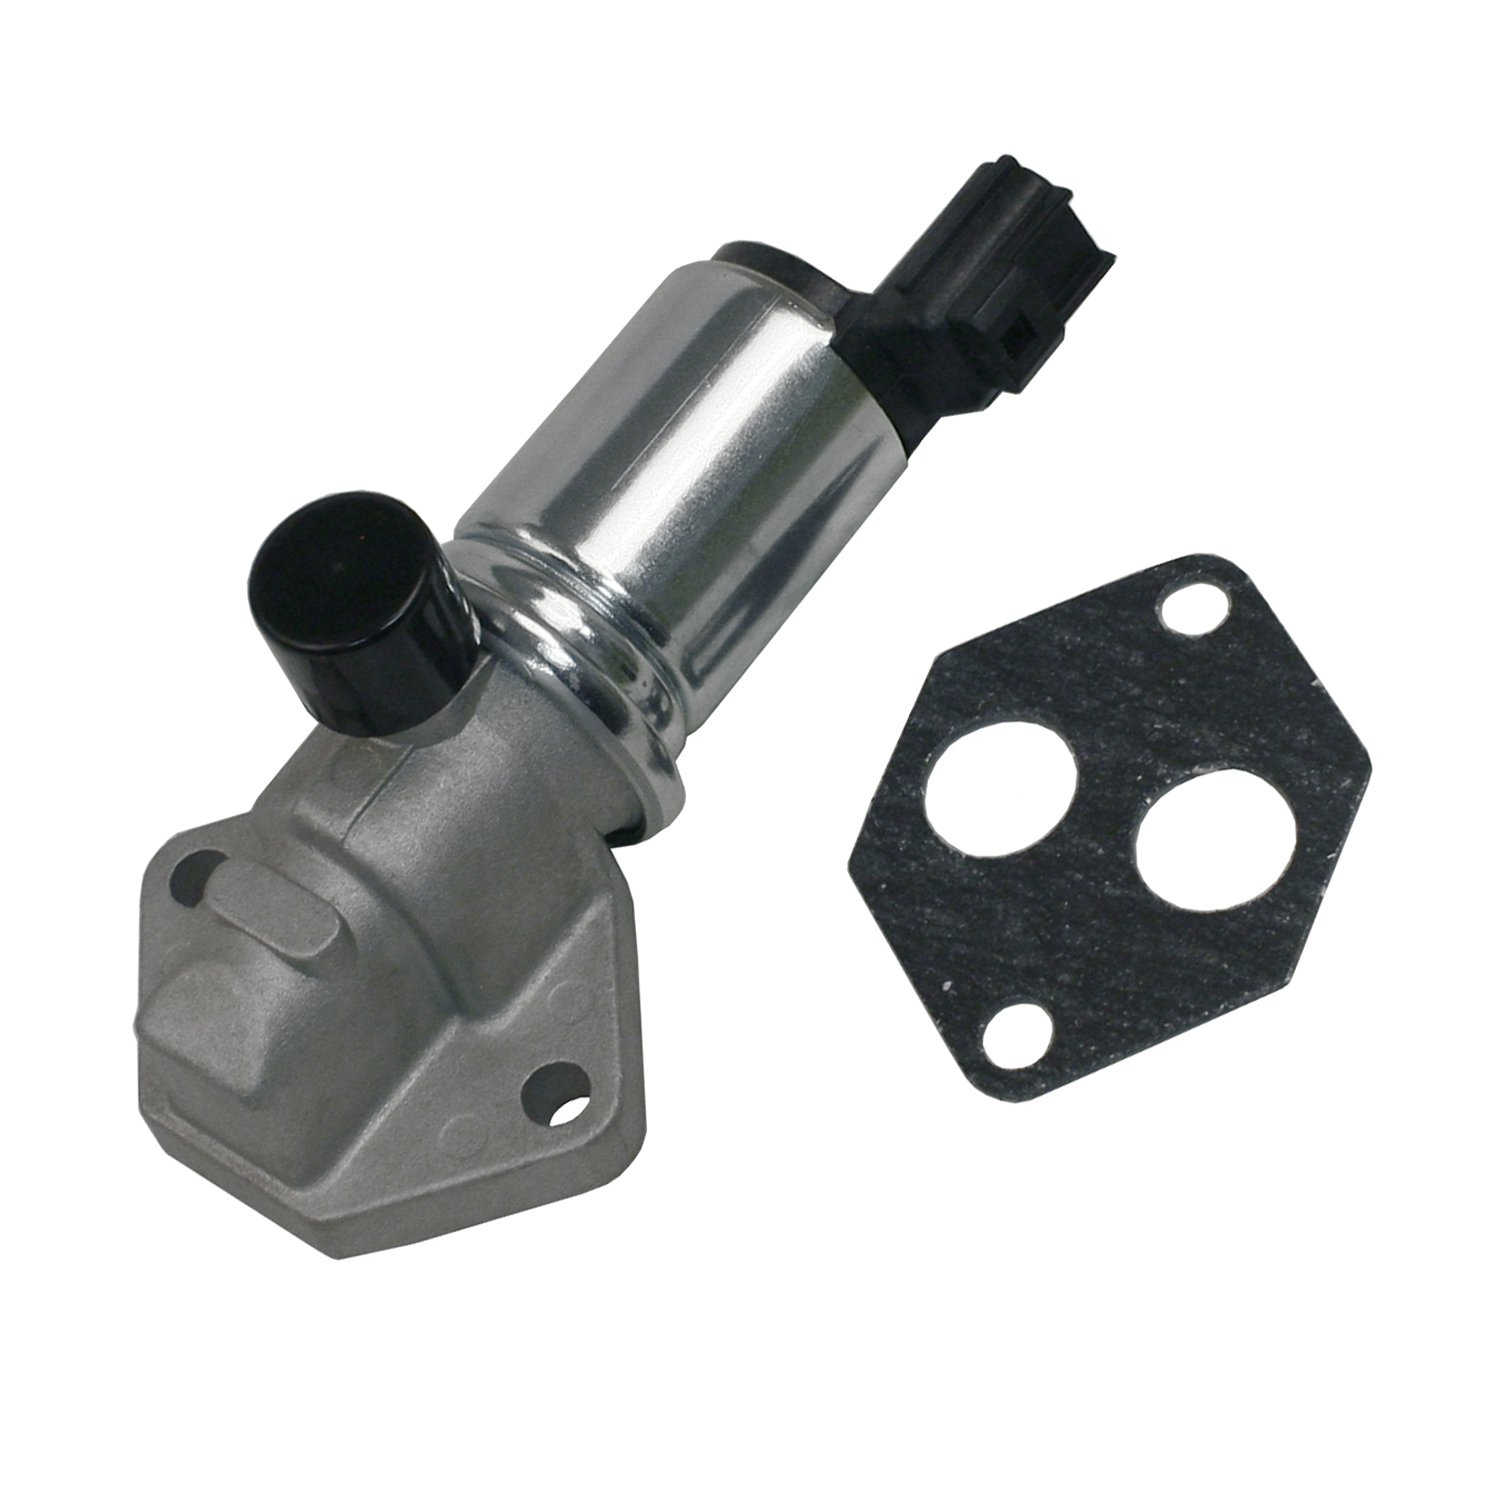 Beck/Arnley 158-1498 Idle Speed Stabilizer